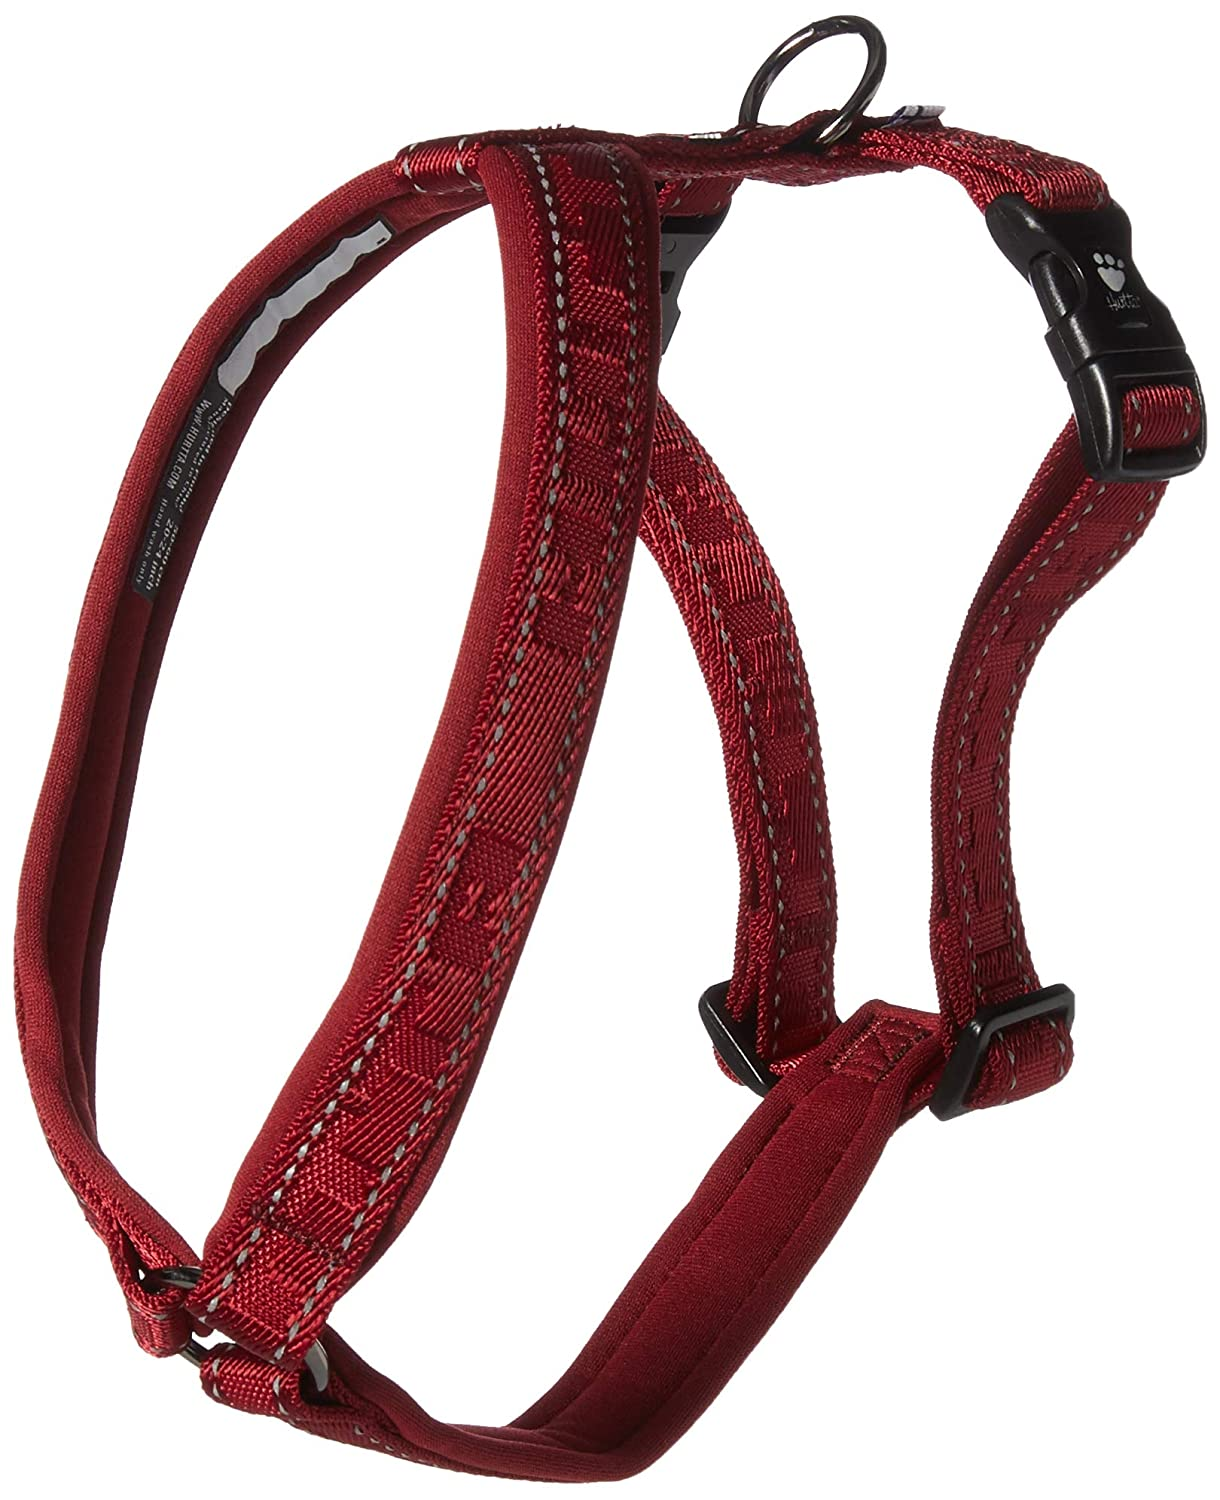 Lingon 1418 Hurtta Casual Padded Dog YHarness, Lingon, 32 in